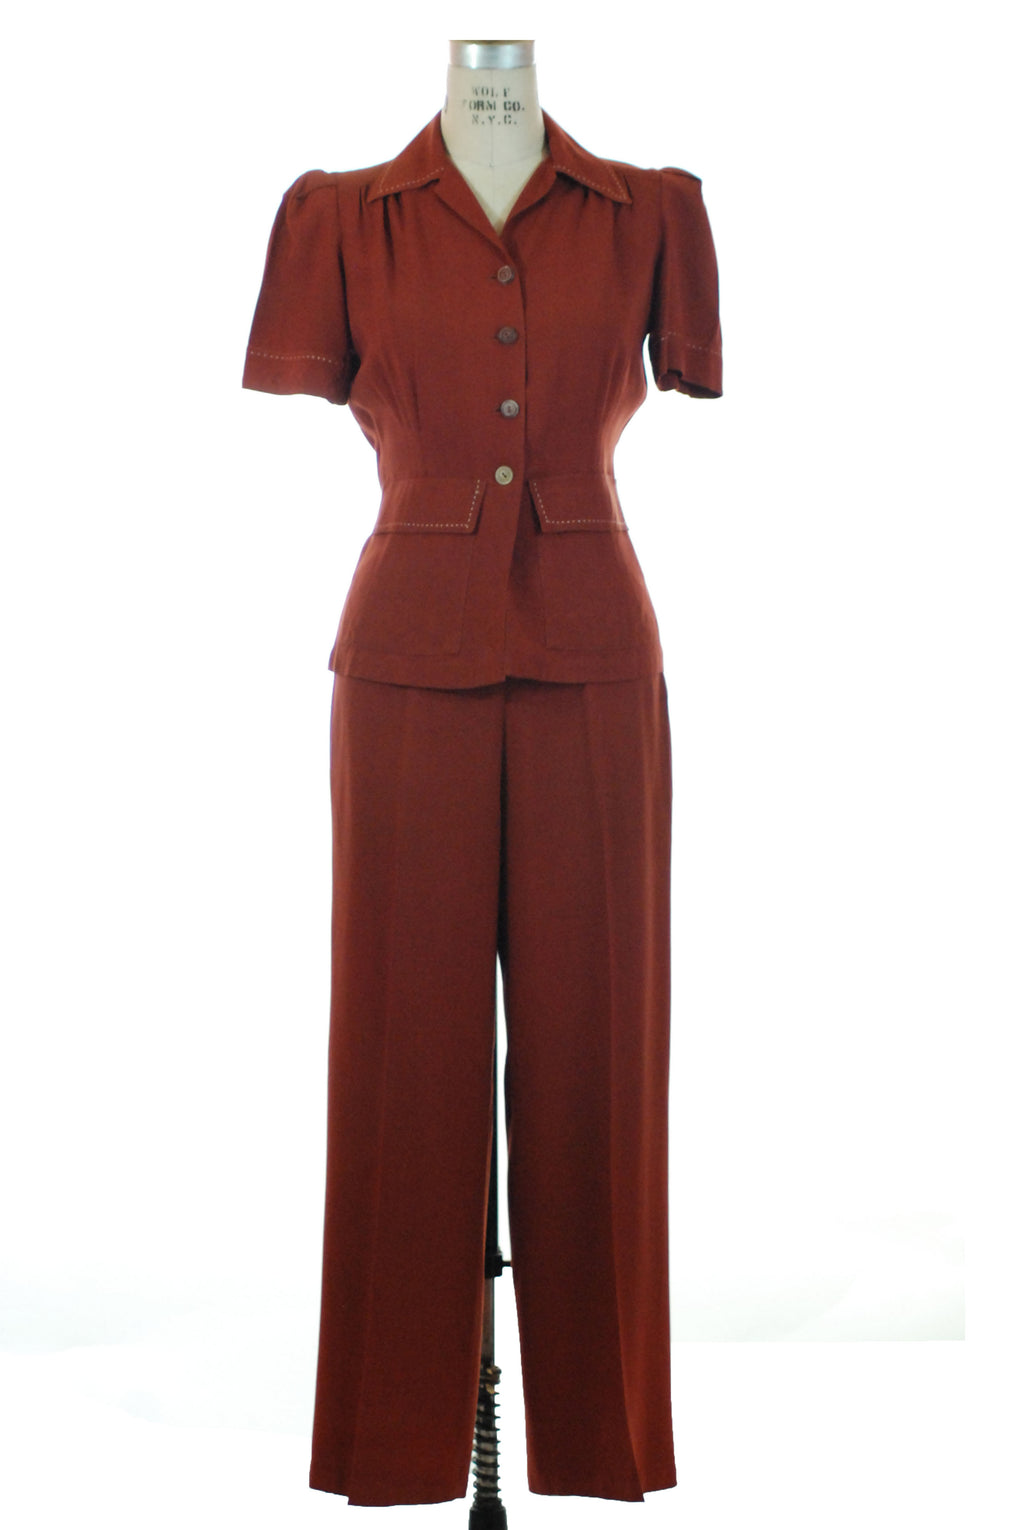 Killer 1940s Sportswear Pantsuit in Rust Brown with Top Stitching by Rochelle of Hollywood